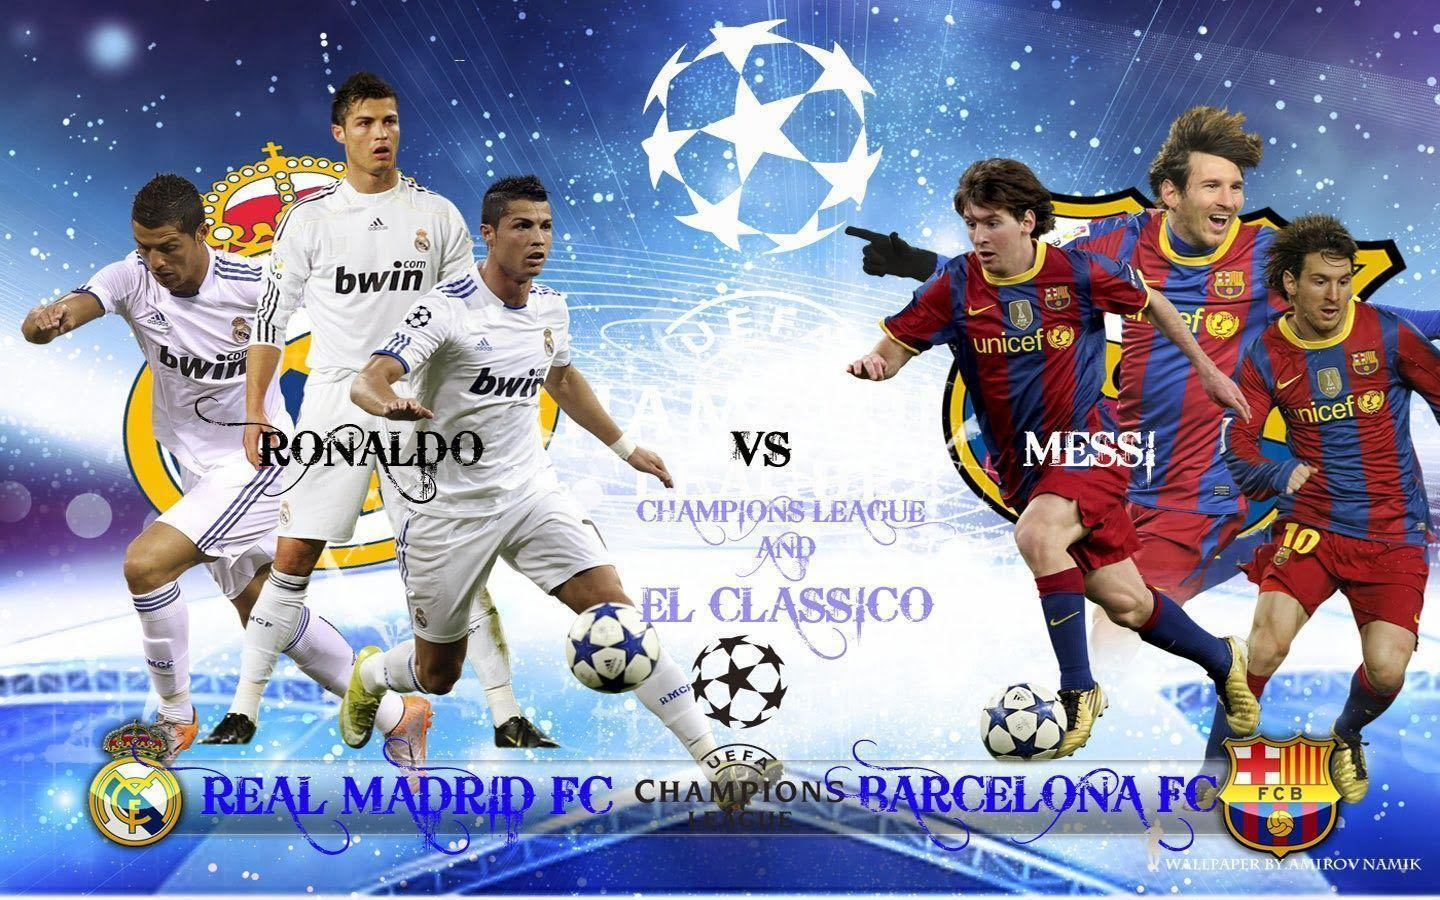 c ronaldo vs messi wallpapers 2015 wallpaper cave